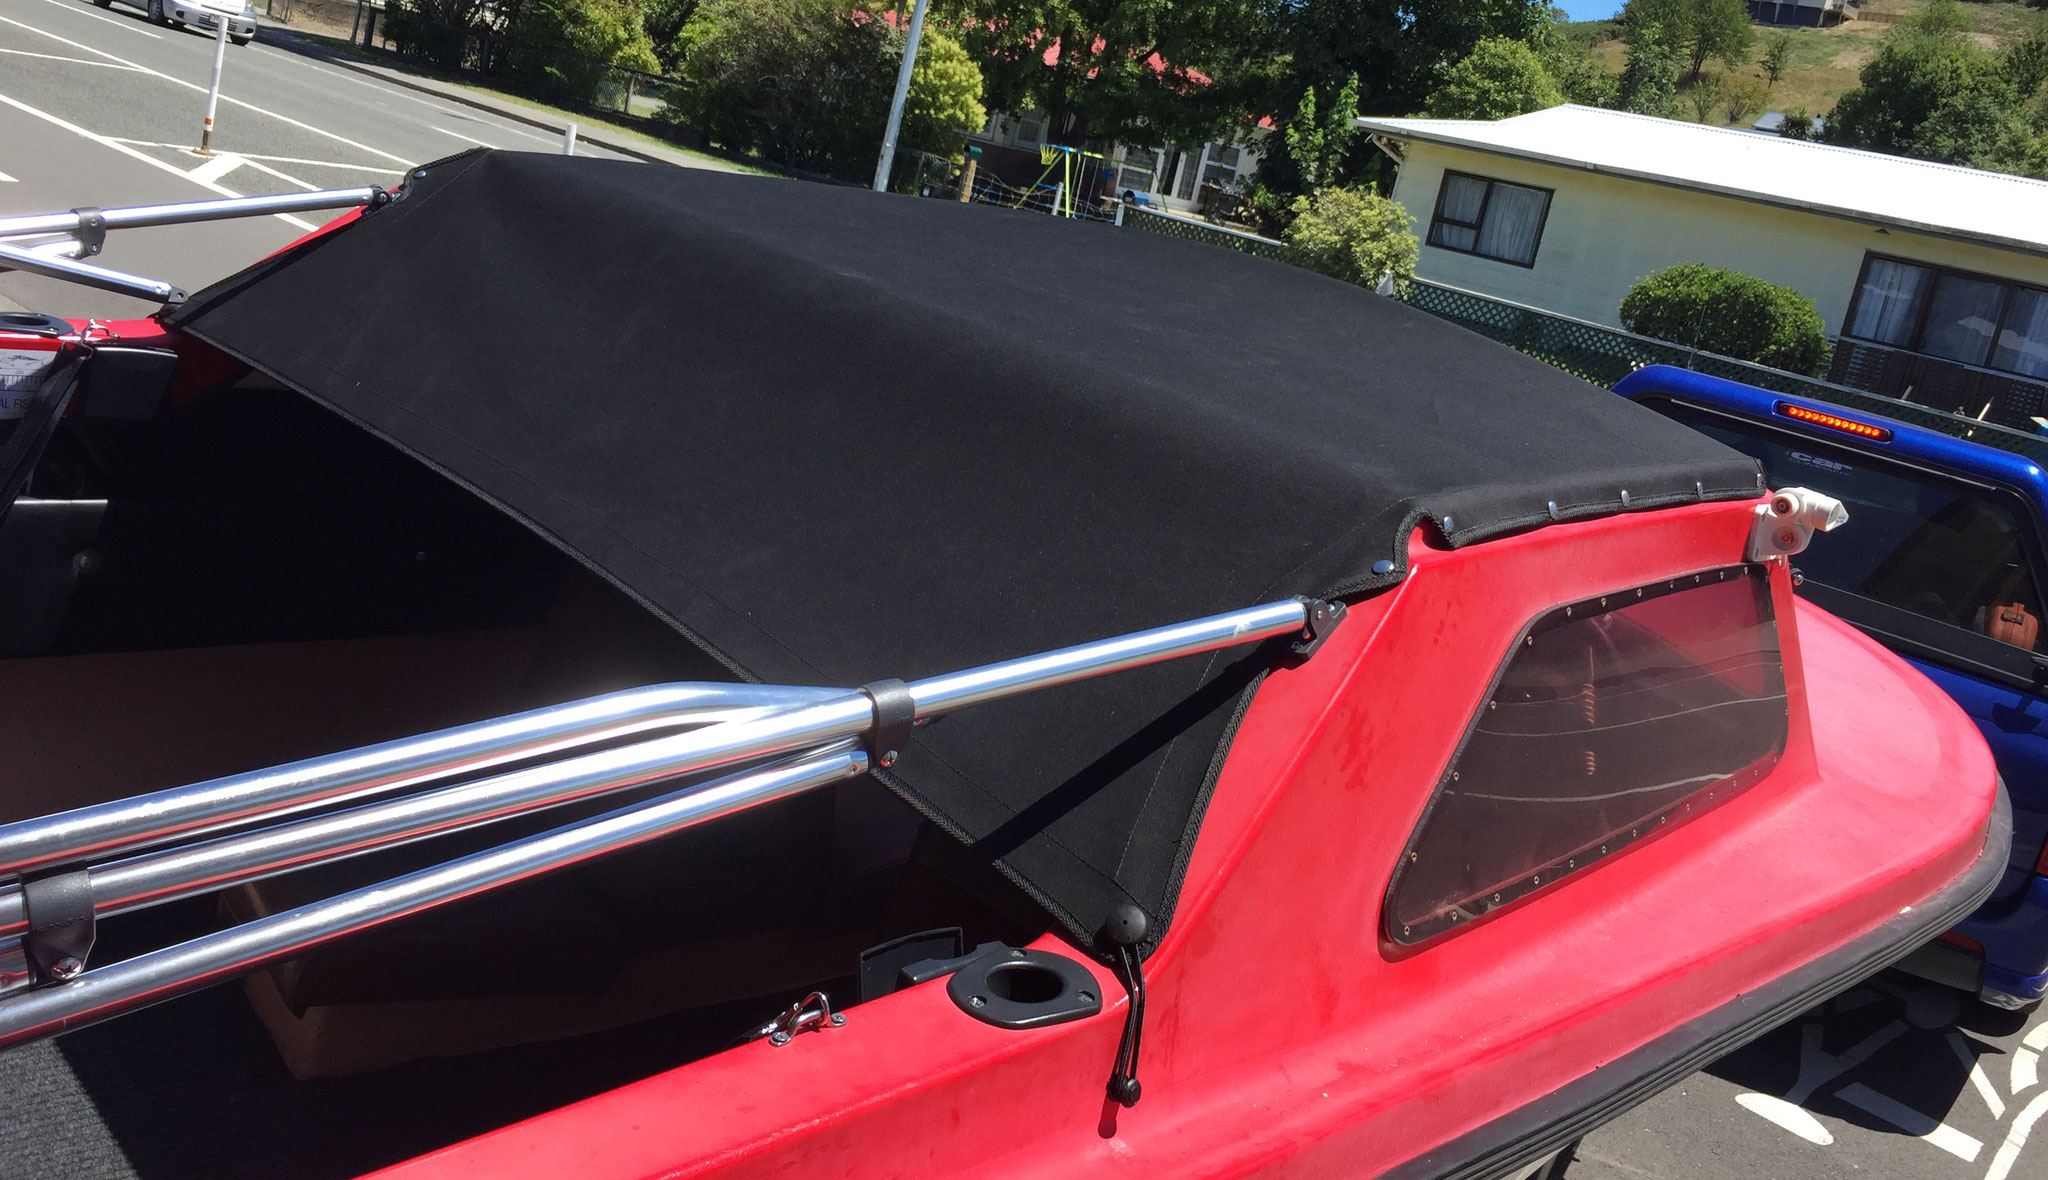 Boat Canopy, Nelson, New Zealand